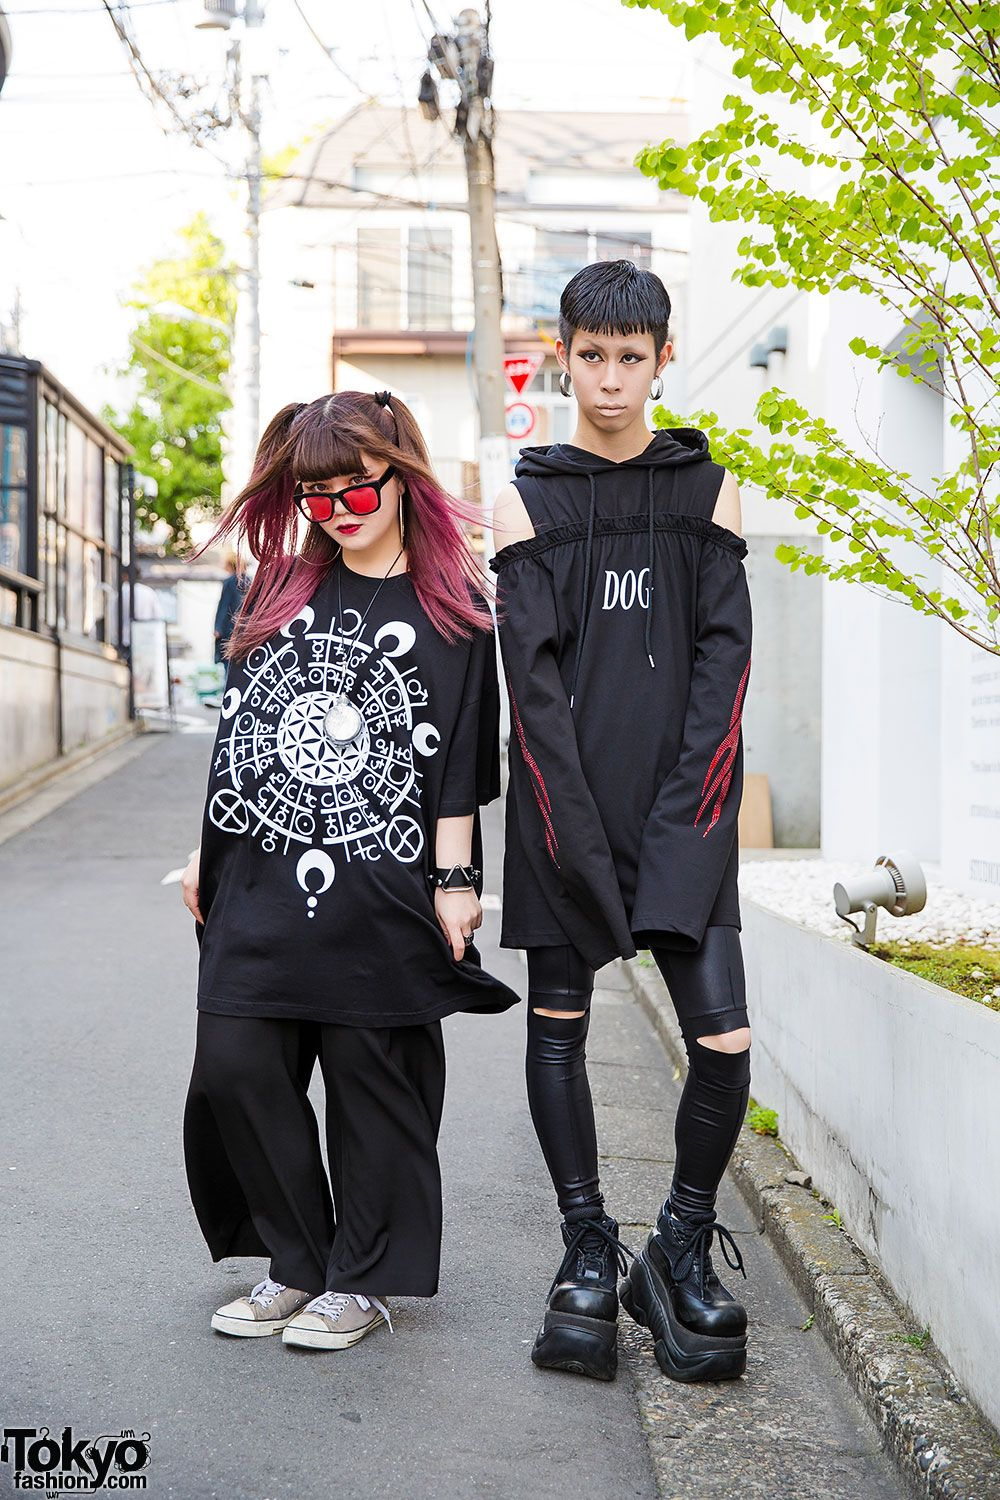 Kasumi and Cham on the street in Harajuku wearing dark looks from the Tokyo boutique Never Mind the XU with items from Drinkscancode, Demonia, and Converse. Full Looks